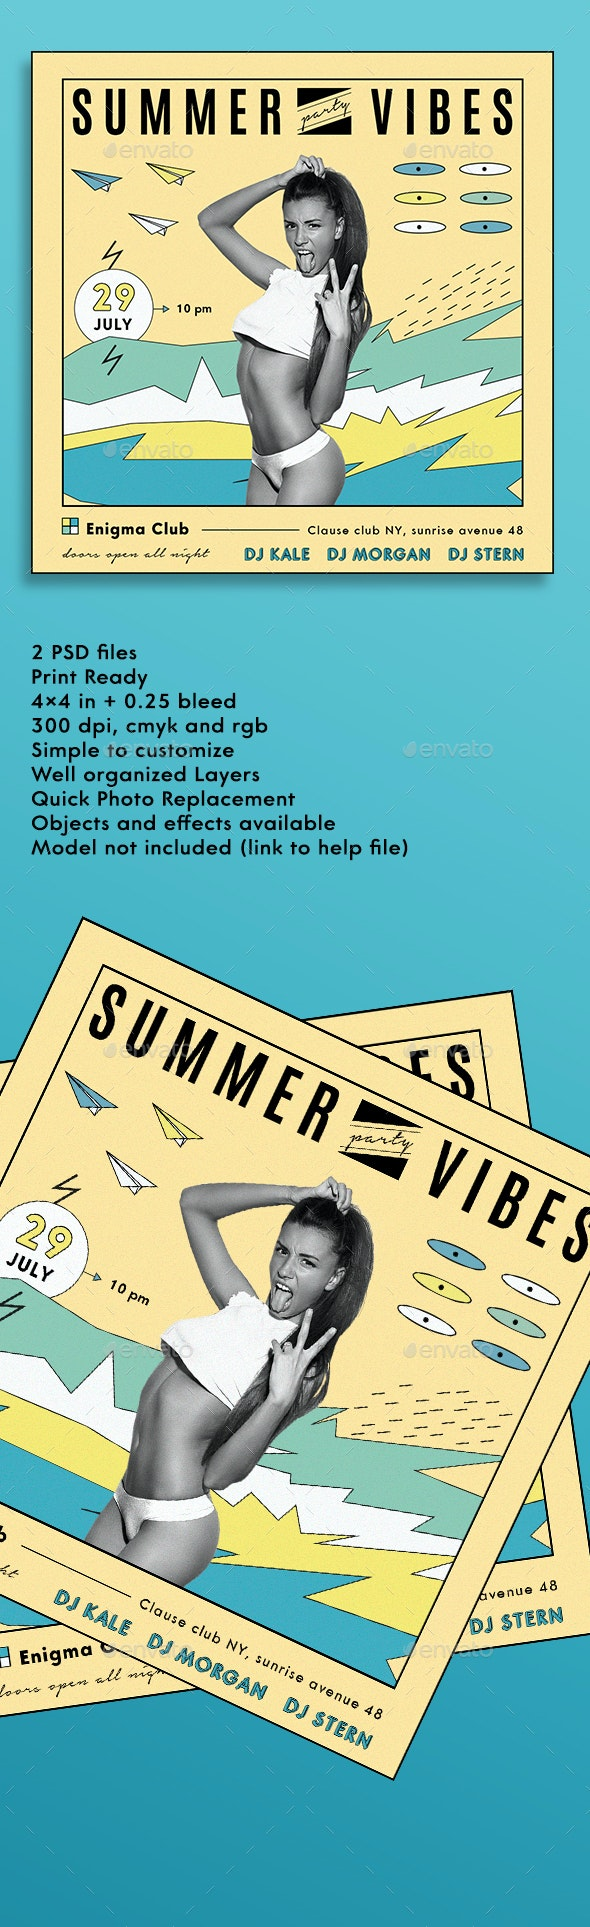 Summer Vibes - Events Flyers